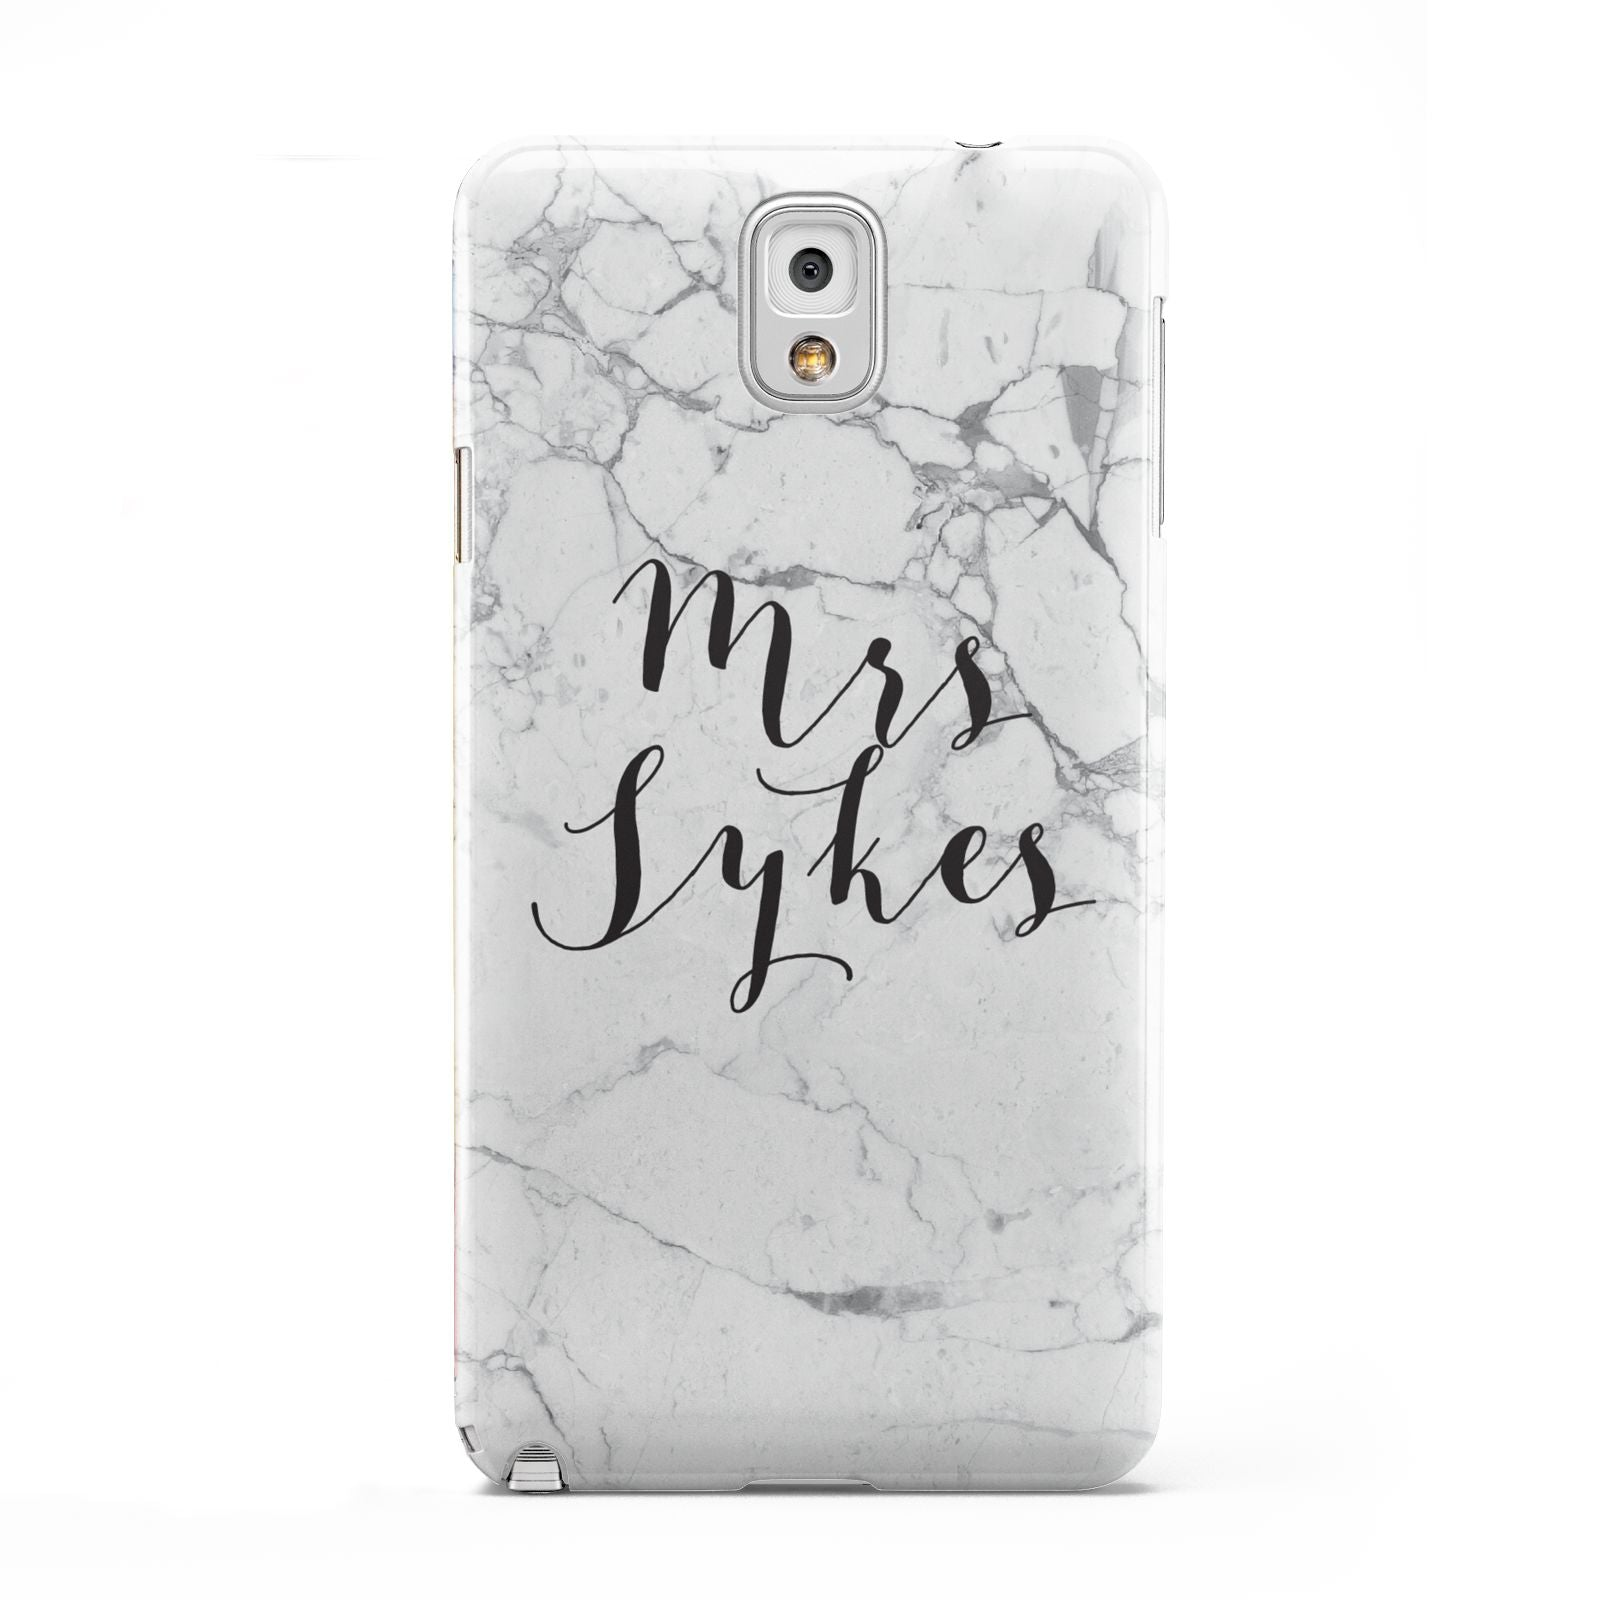 Surname Personalised Marble Samsung Galaxy Note 3 Case